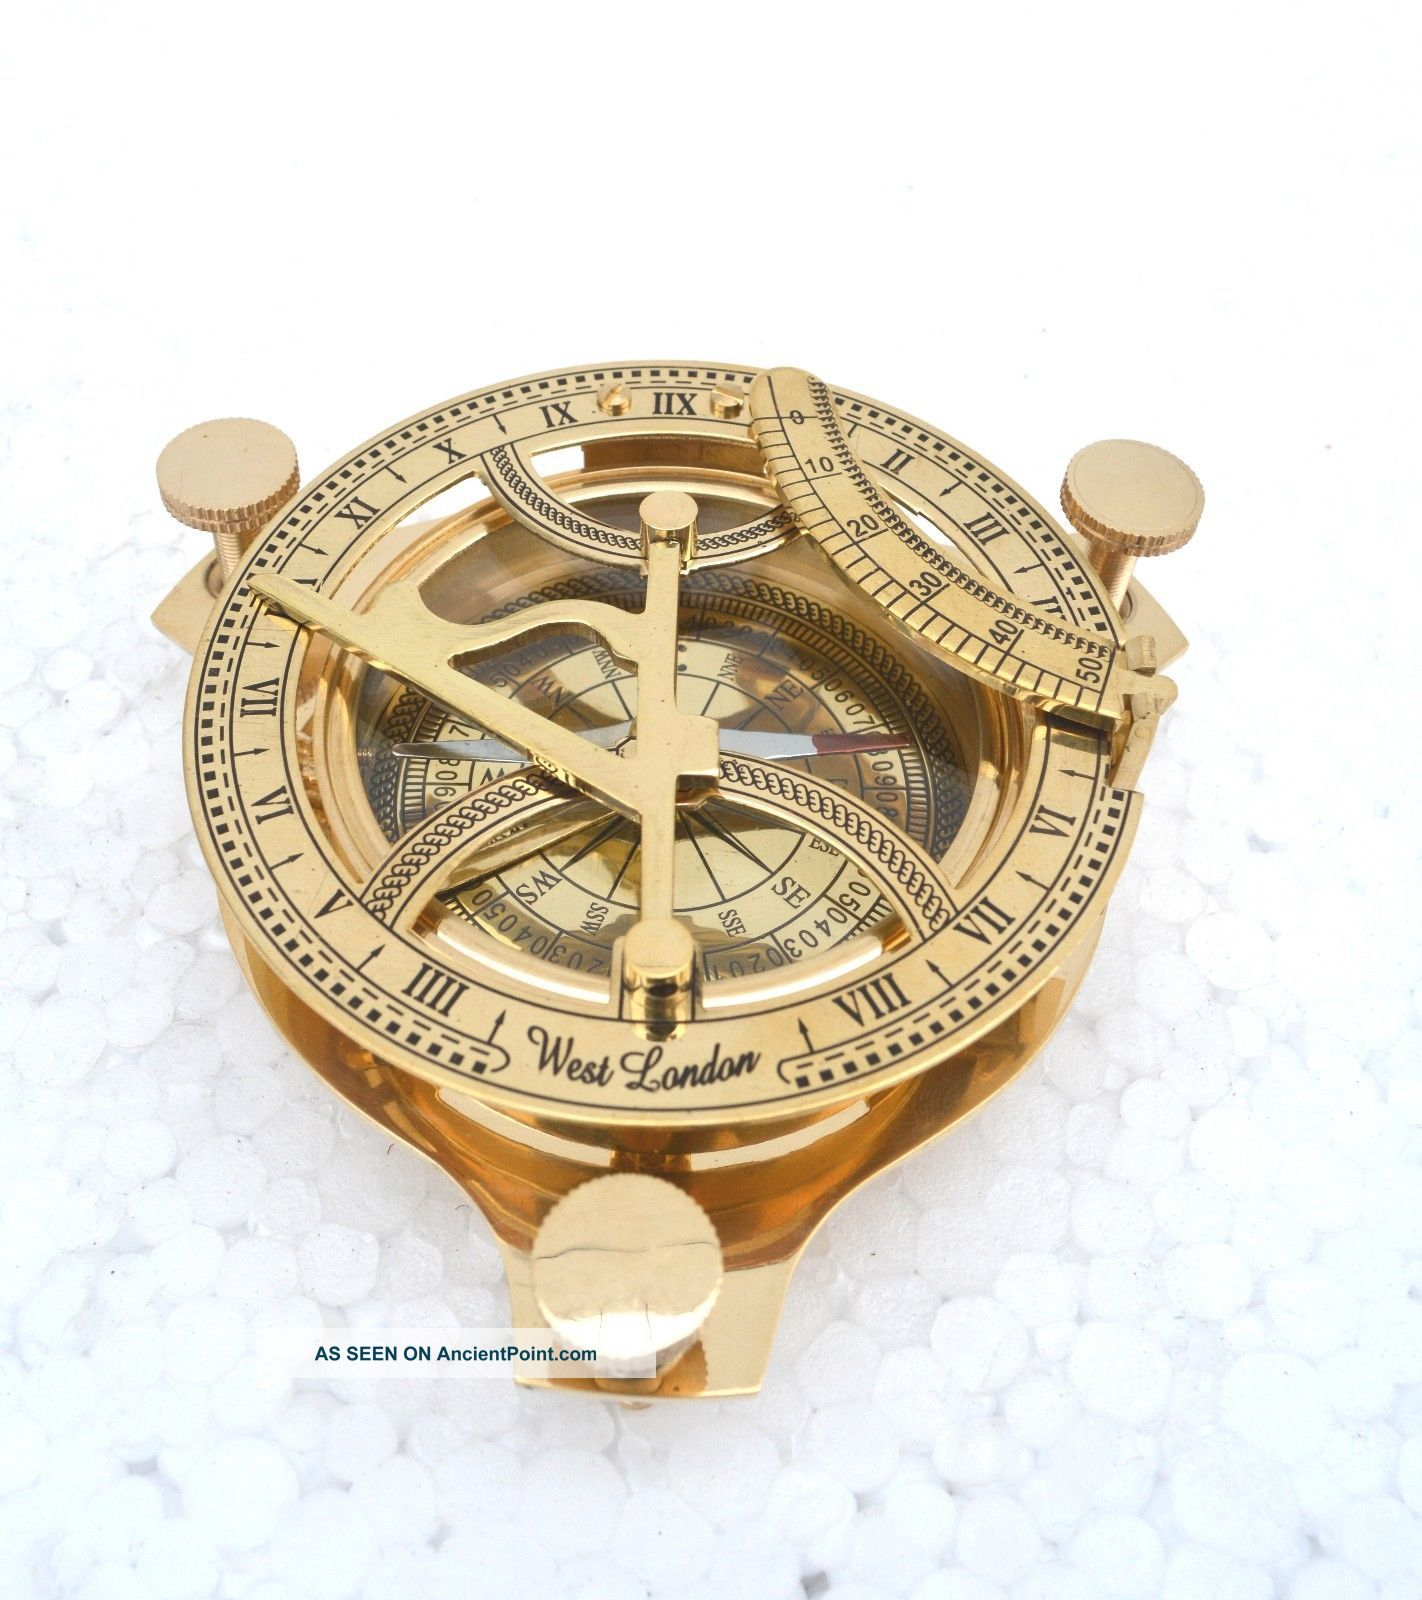 Vintage Maritime West London Antique Brass Sundial Triangular Compass Replica Compasses photo